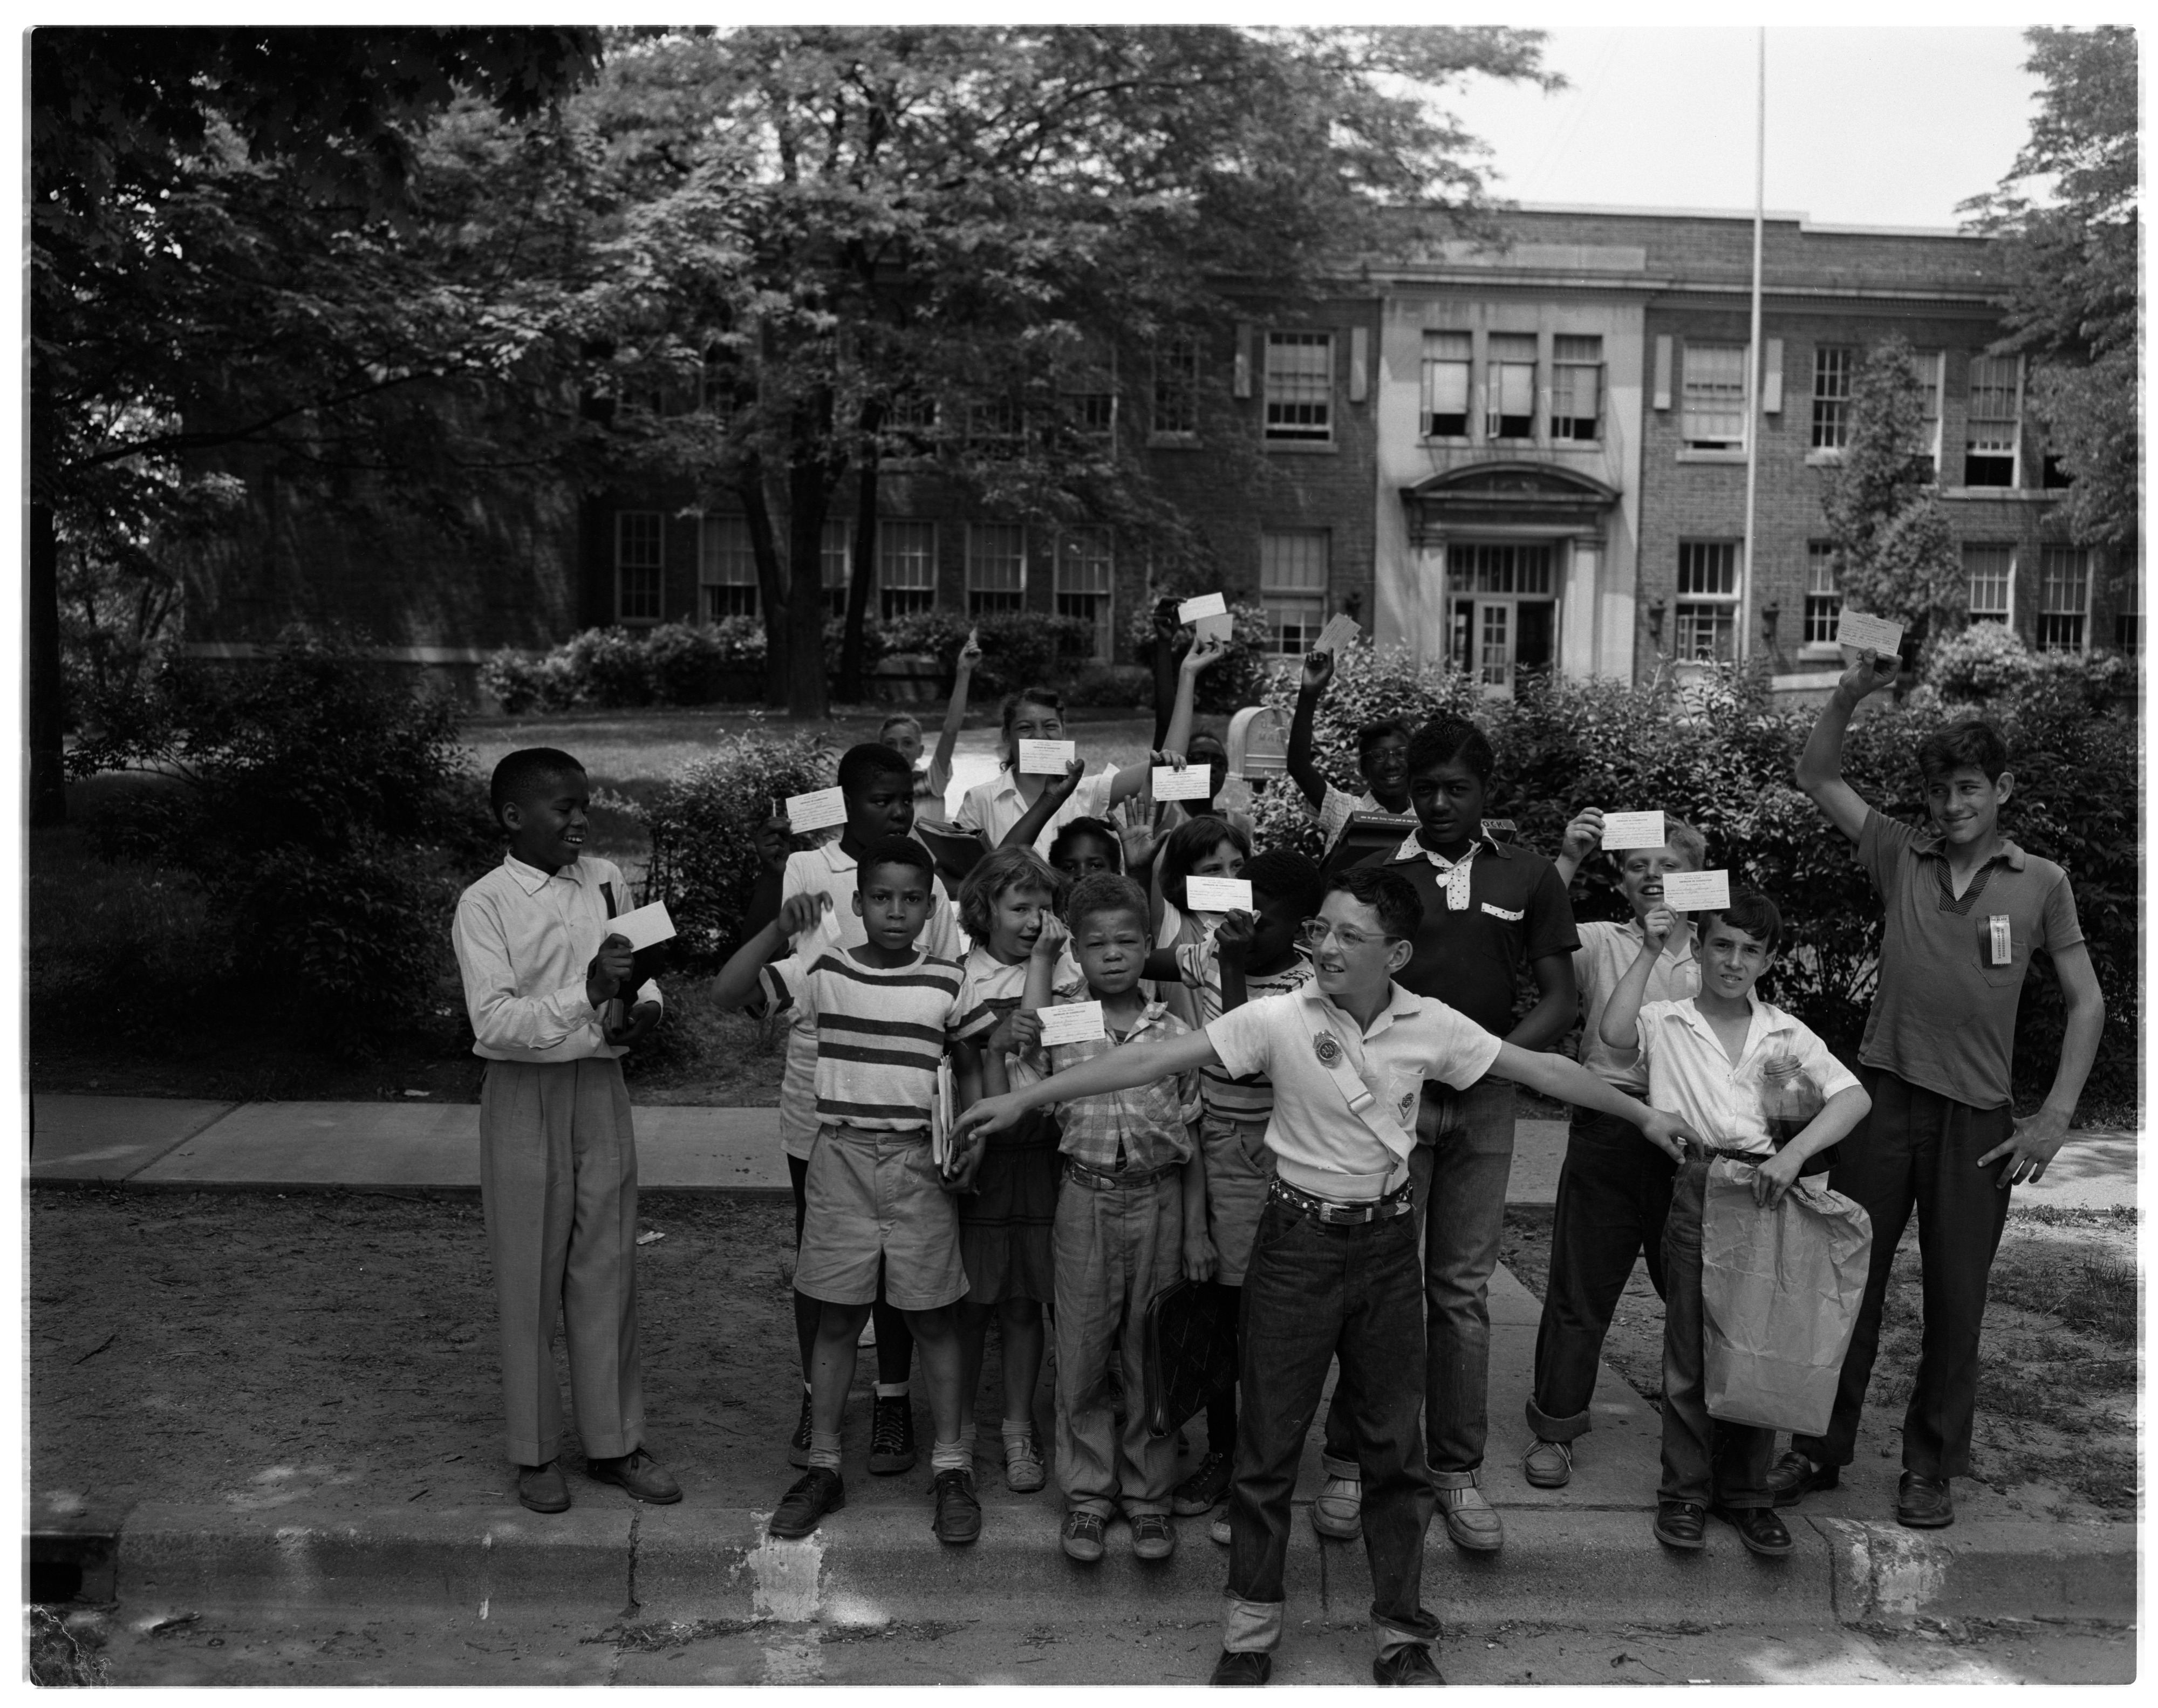 Jones School Students Leave For Summer Vacation, June 1956 image